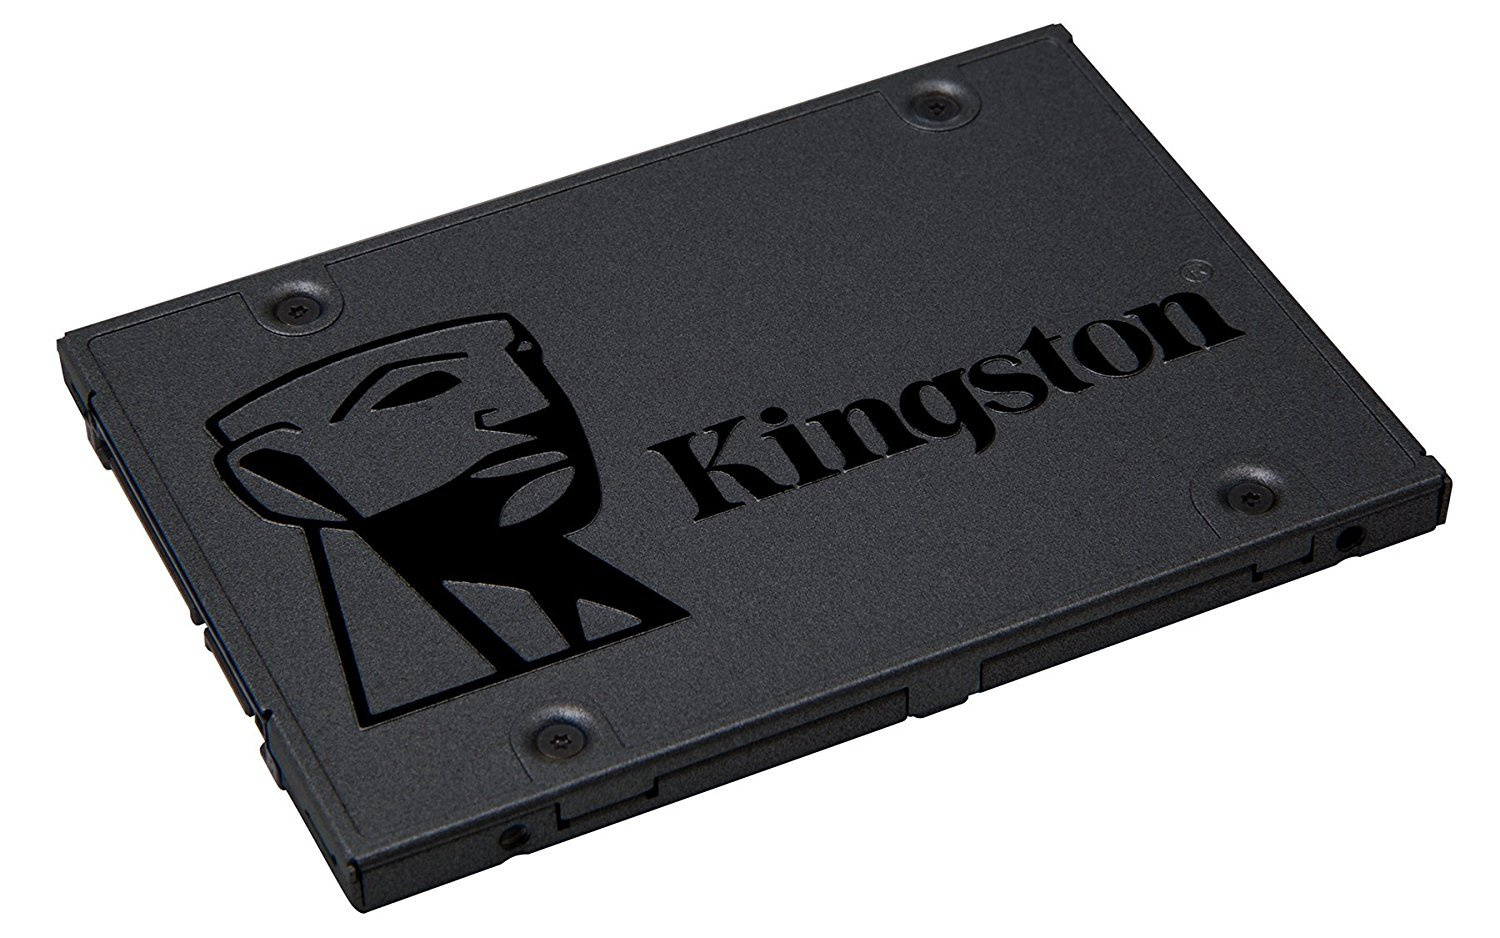 Kingston SSD A400 – Disco duro sólido de 480 GB (2.5″ SATA 3)